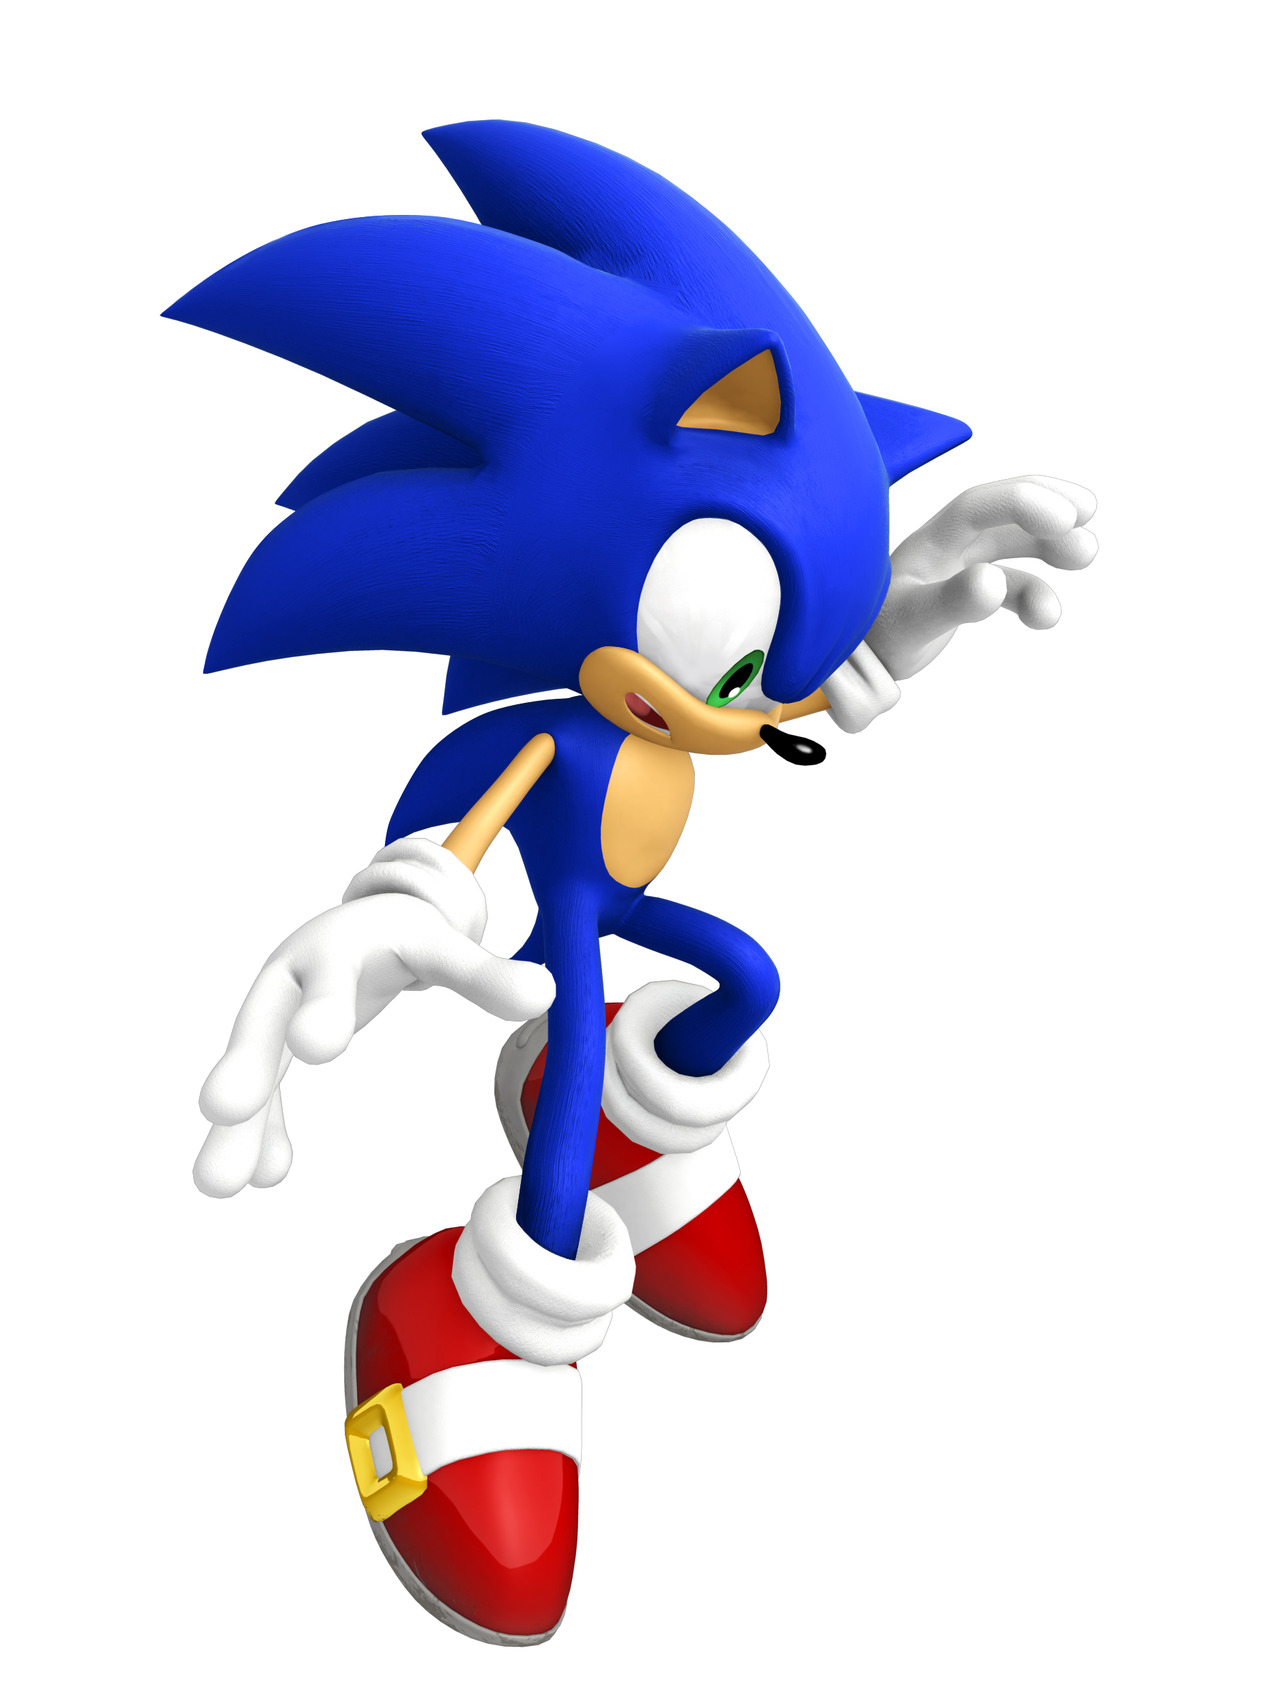 jeuxvideo.com Sonic the Hedgehog 4 : Episode I - PlayStation 3 Image